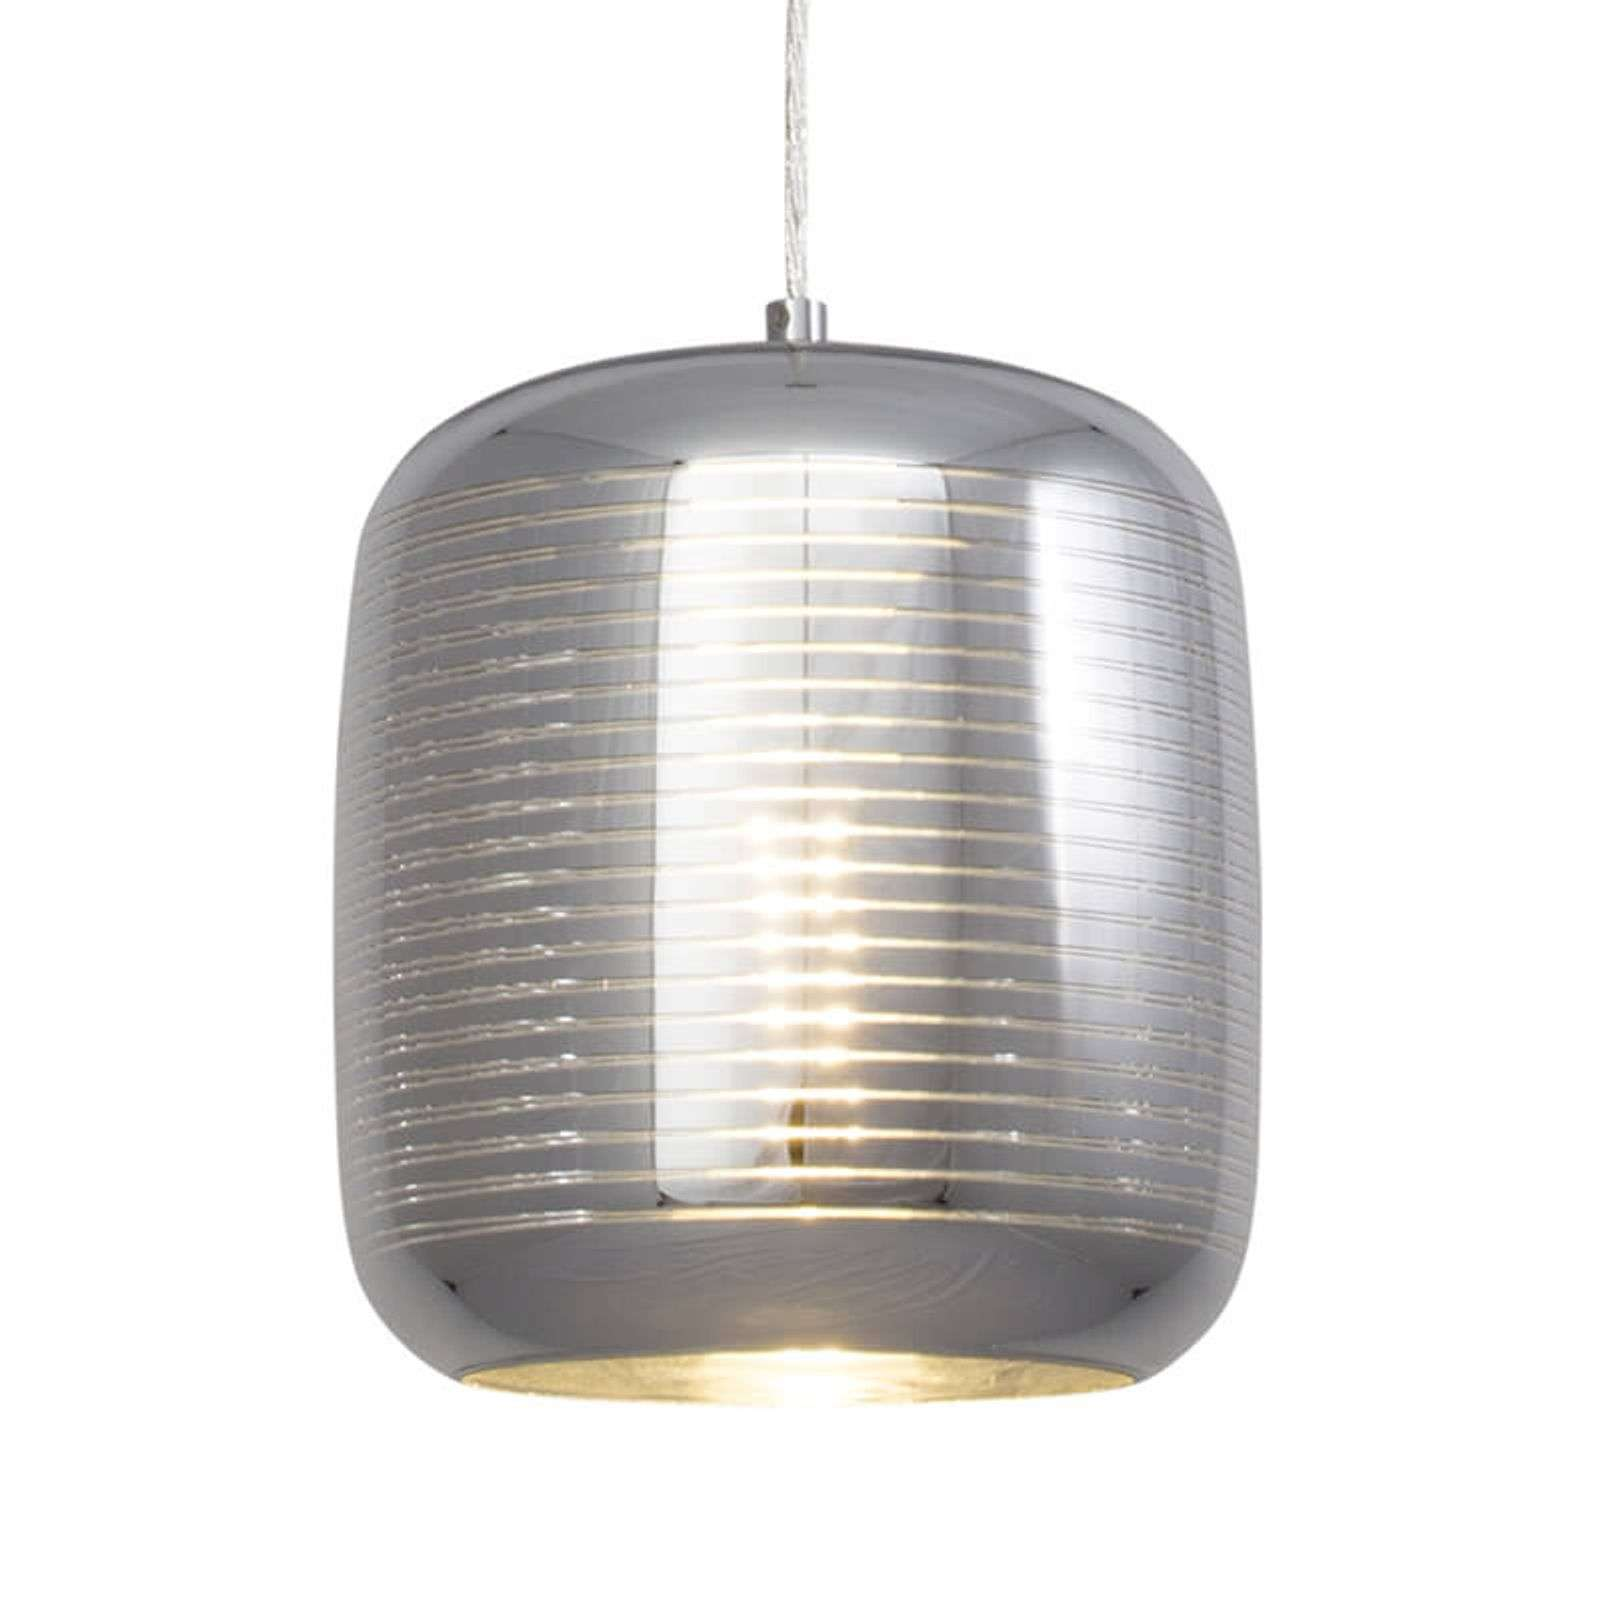 Suspension moderne Feeling, abat-jour en verre